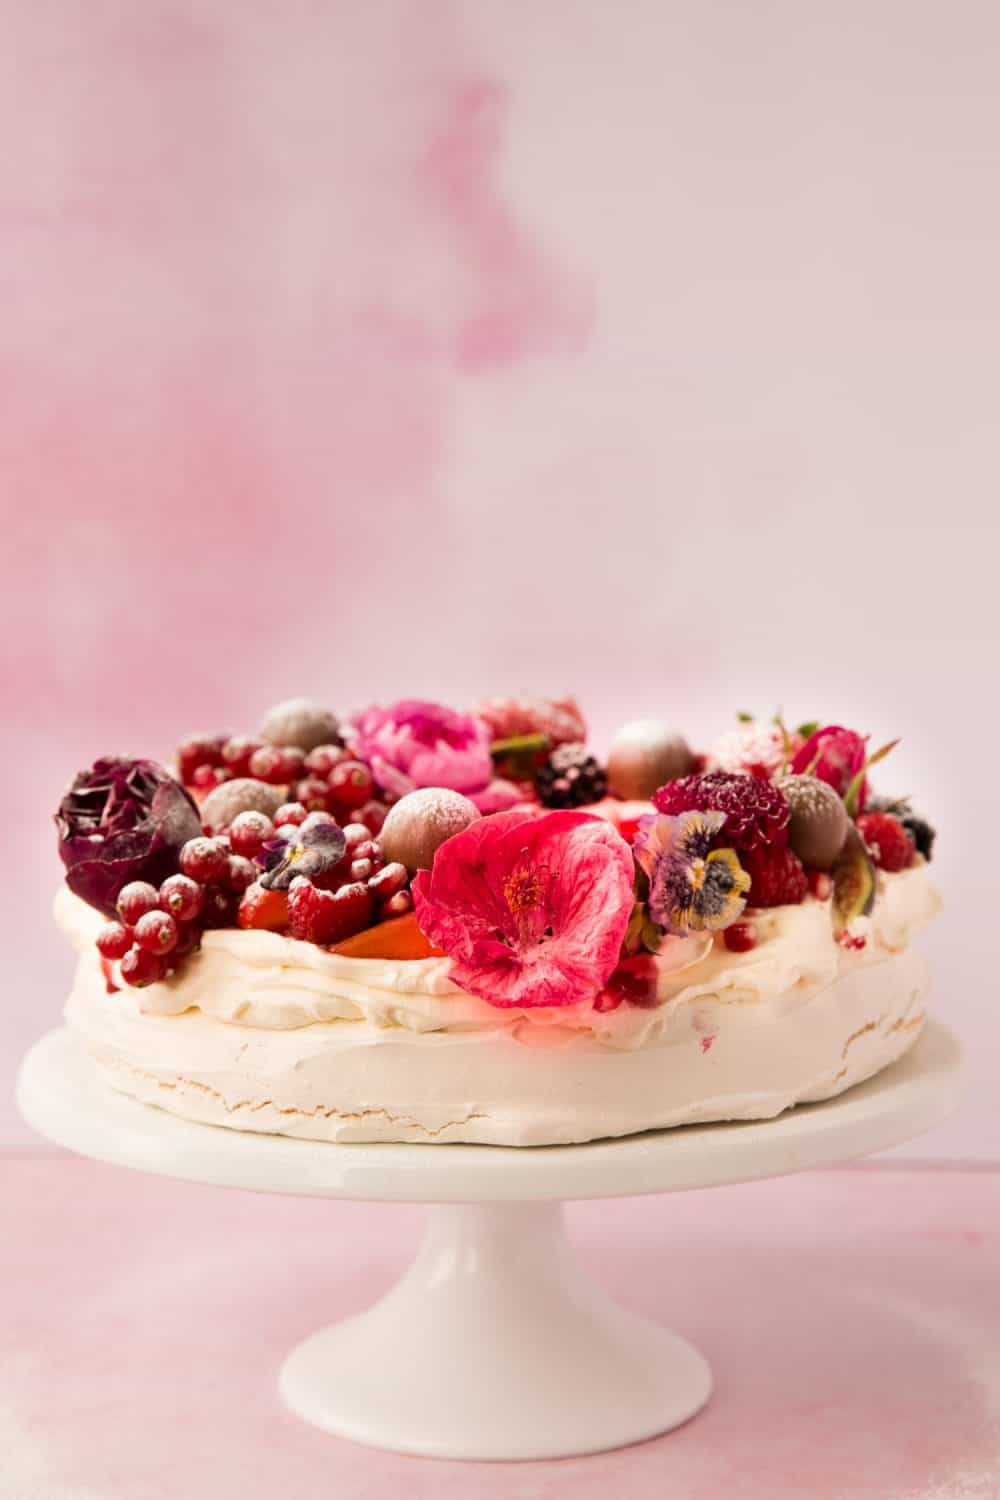 A pink background with a pavlova dessert on a white cake stand. The pavlova is covered with cascading berries and topped with chocolates and pink and red edible flowers.